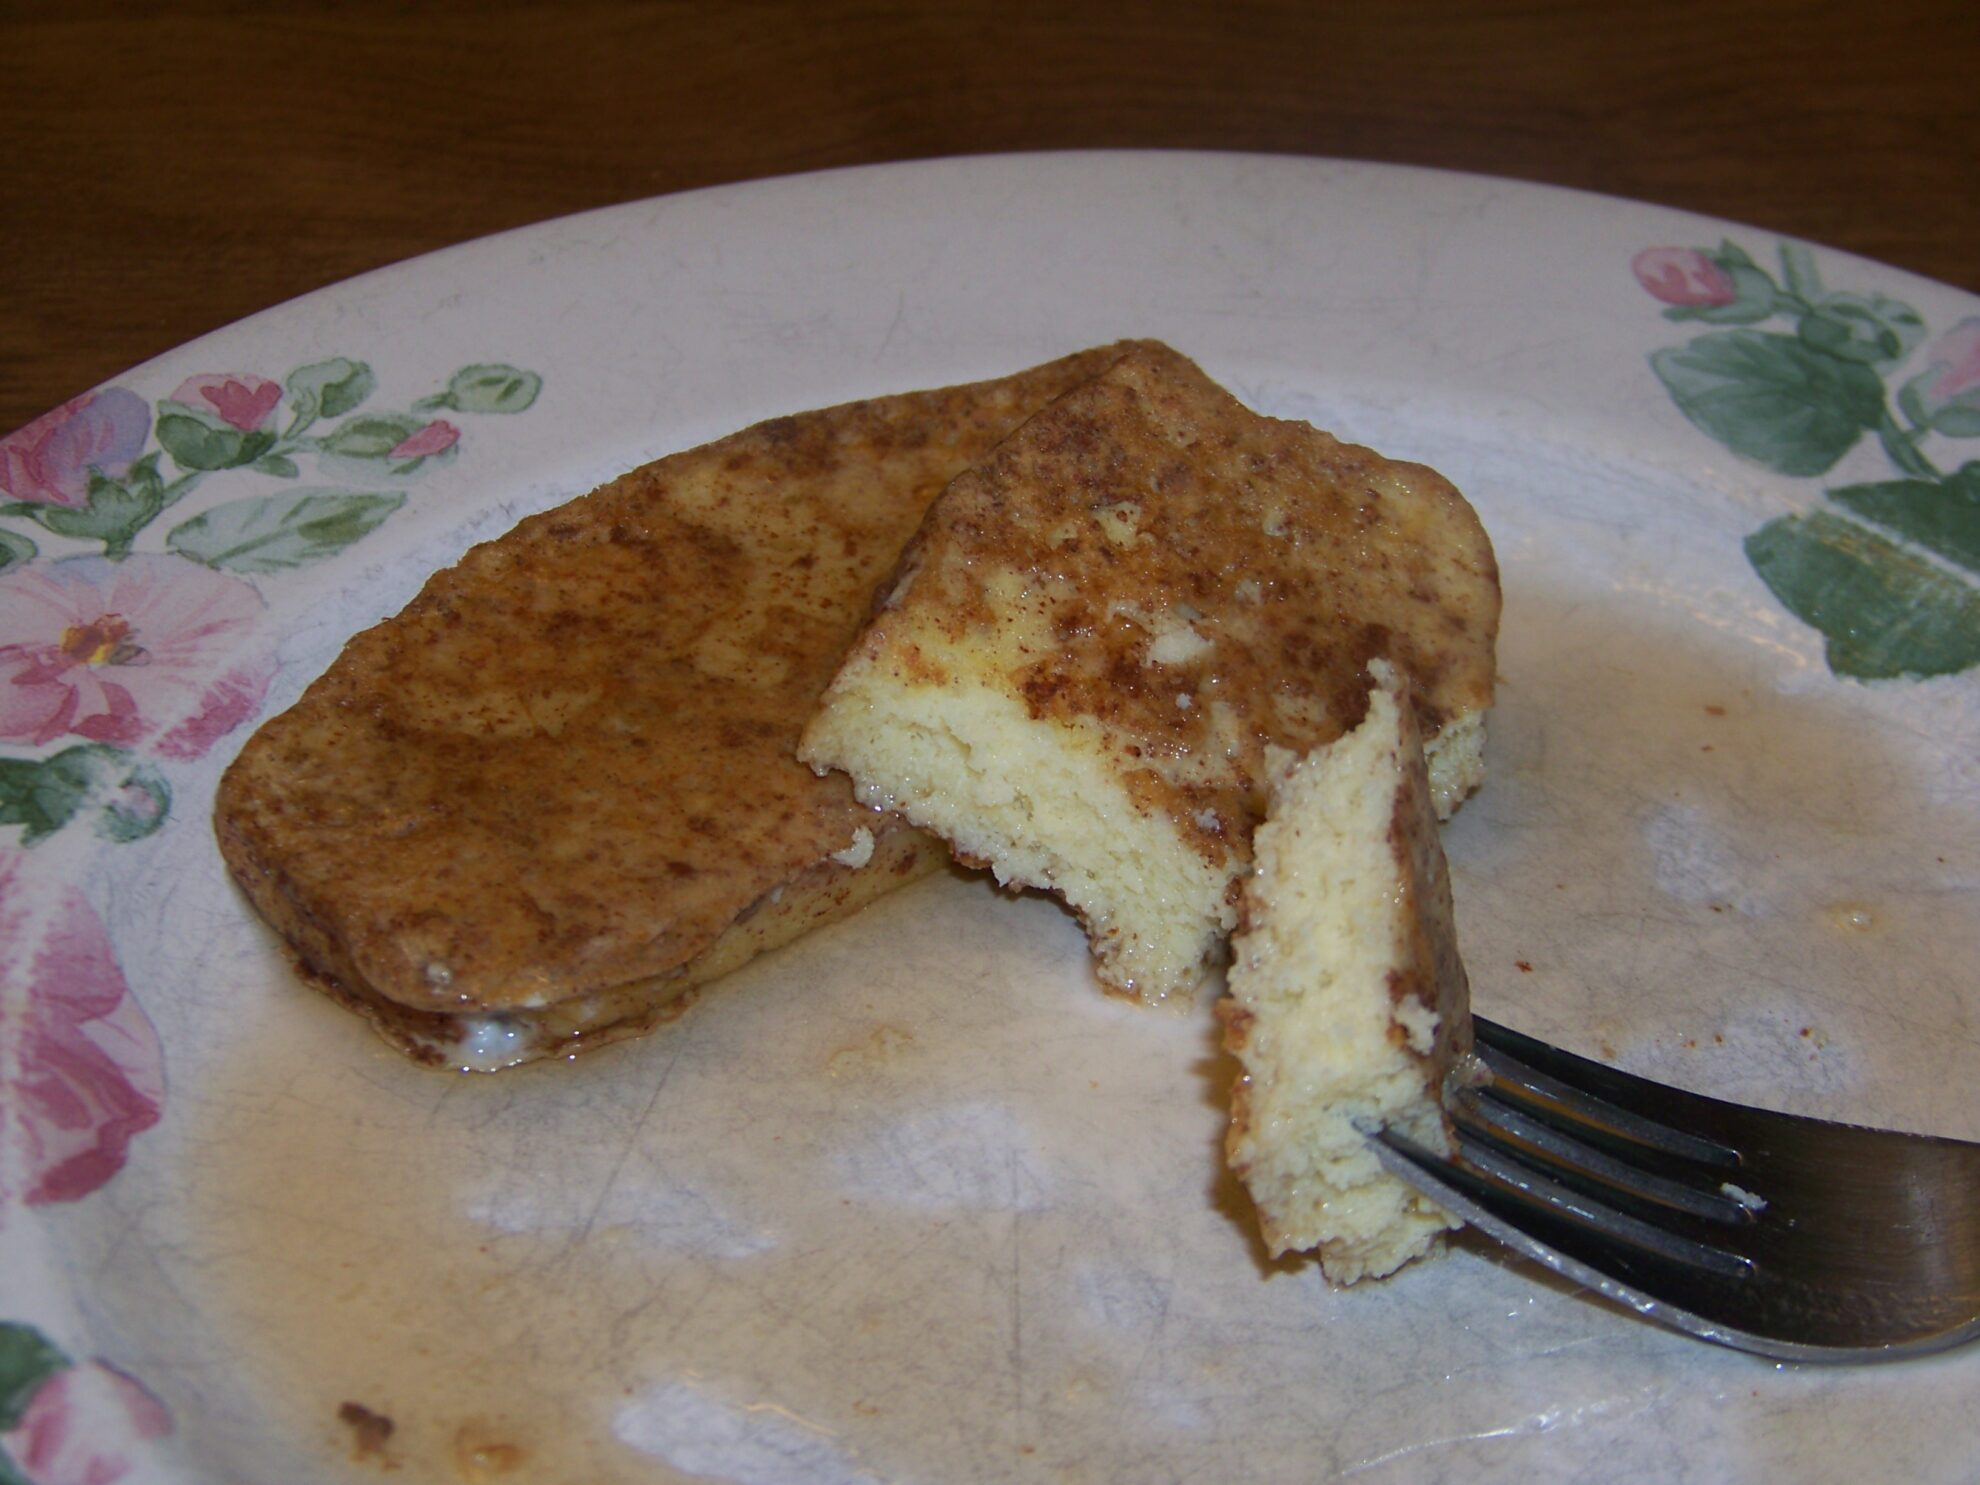 Low Carb French Toast with Cinnamon - Gluten Free | Low Carb Yum